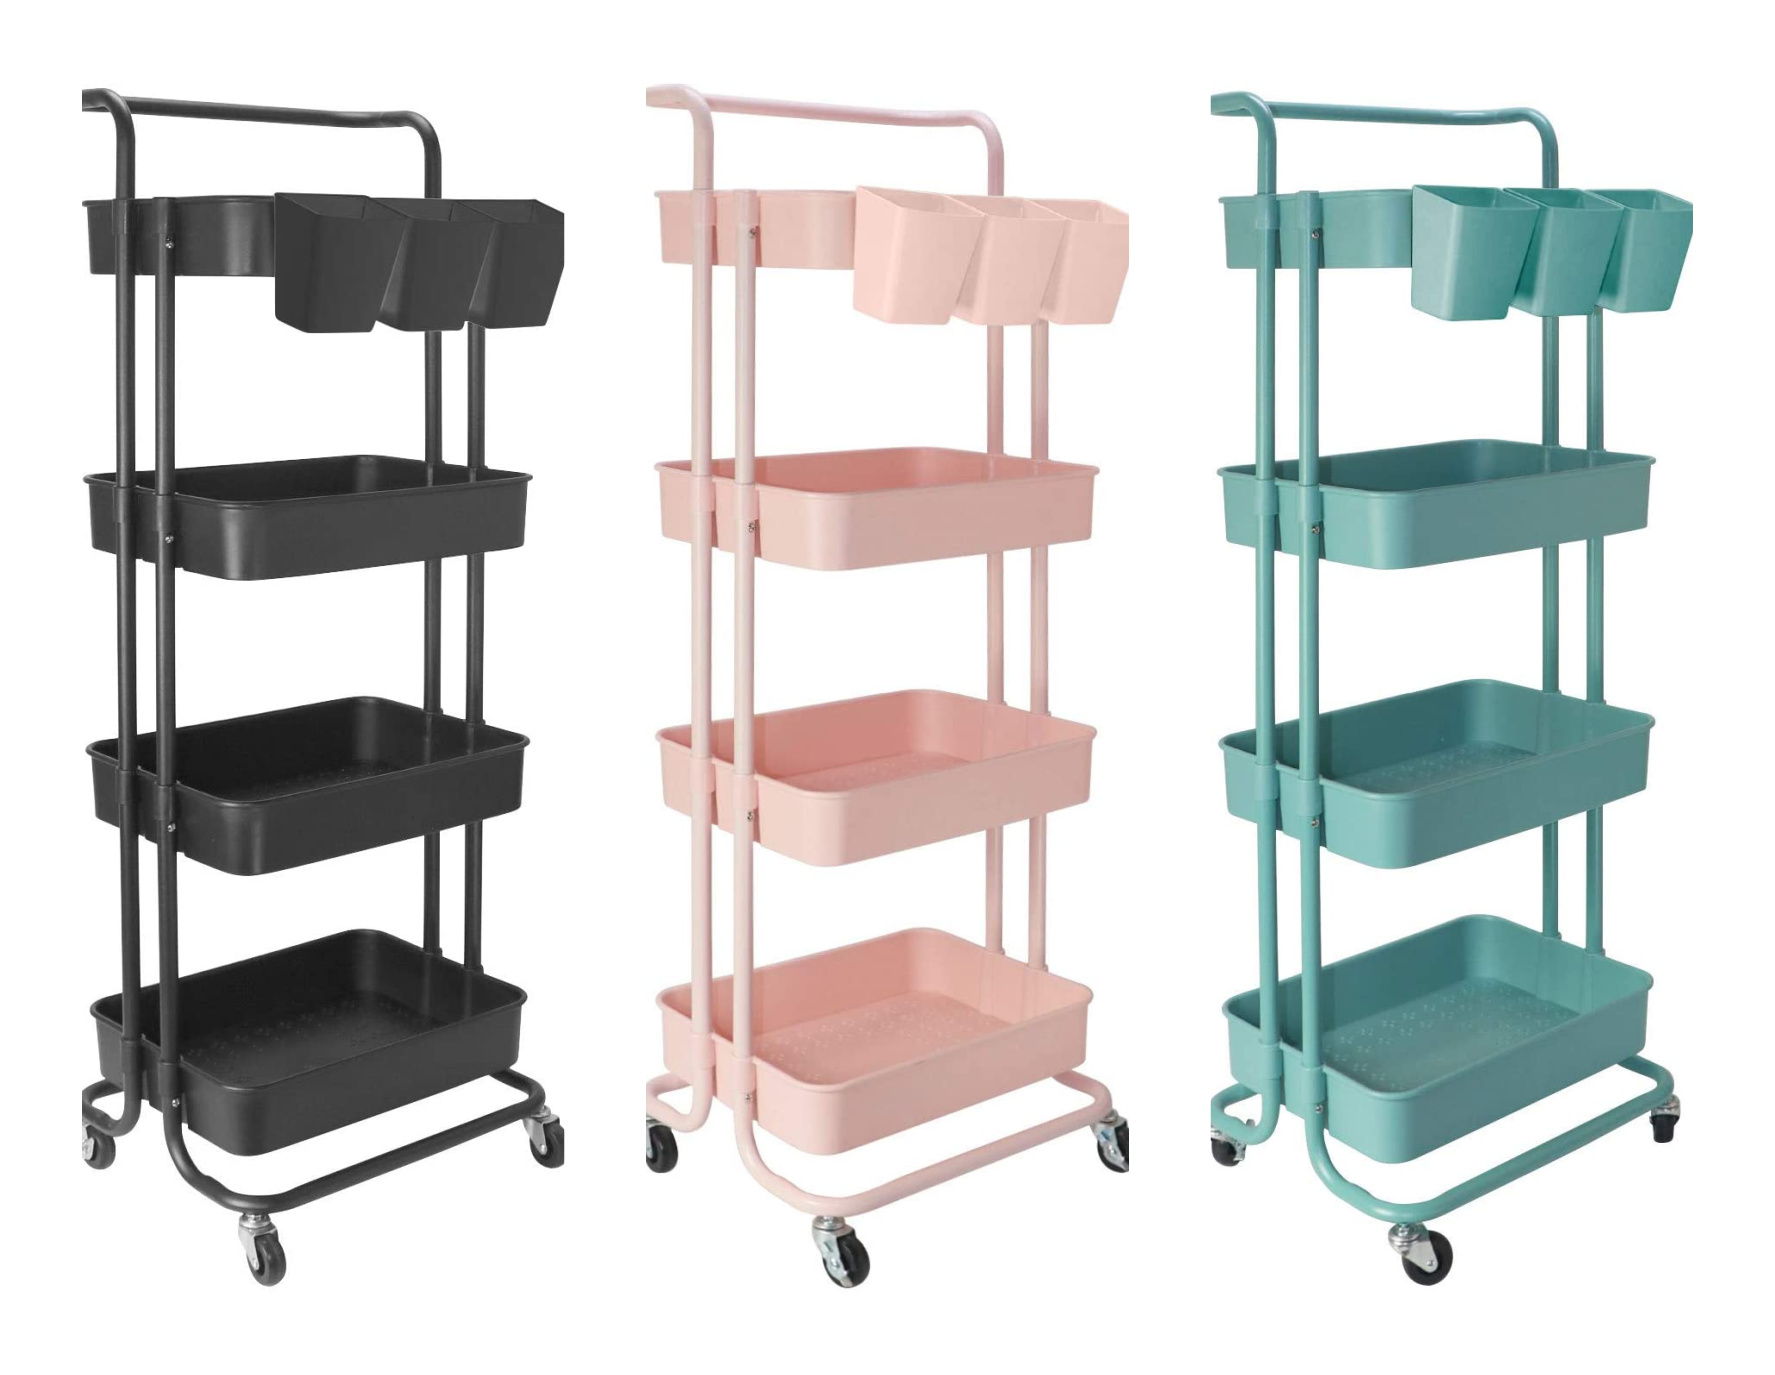 Four tier rolling carts